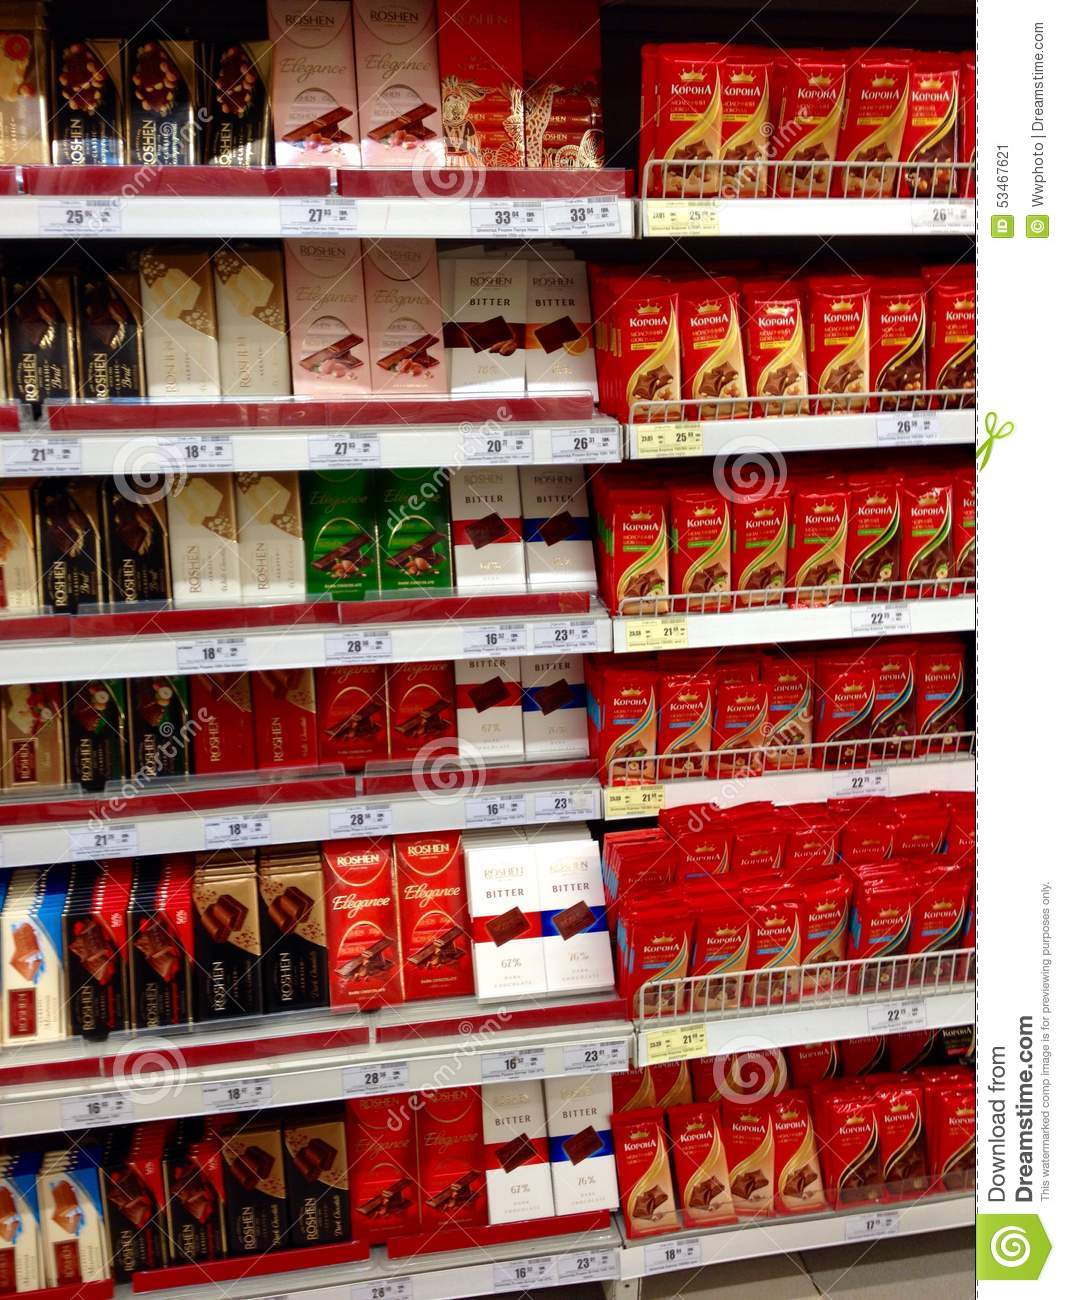 food product dating and storage times 1 food date labels and product distribution guidelines  federal, state and local laws  federal law: there is no federal law regulating food dates.